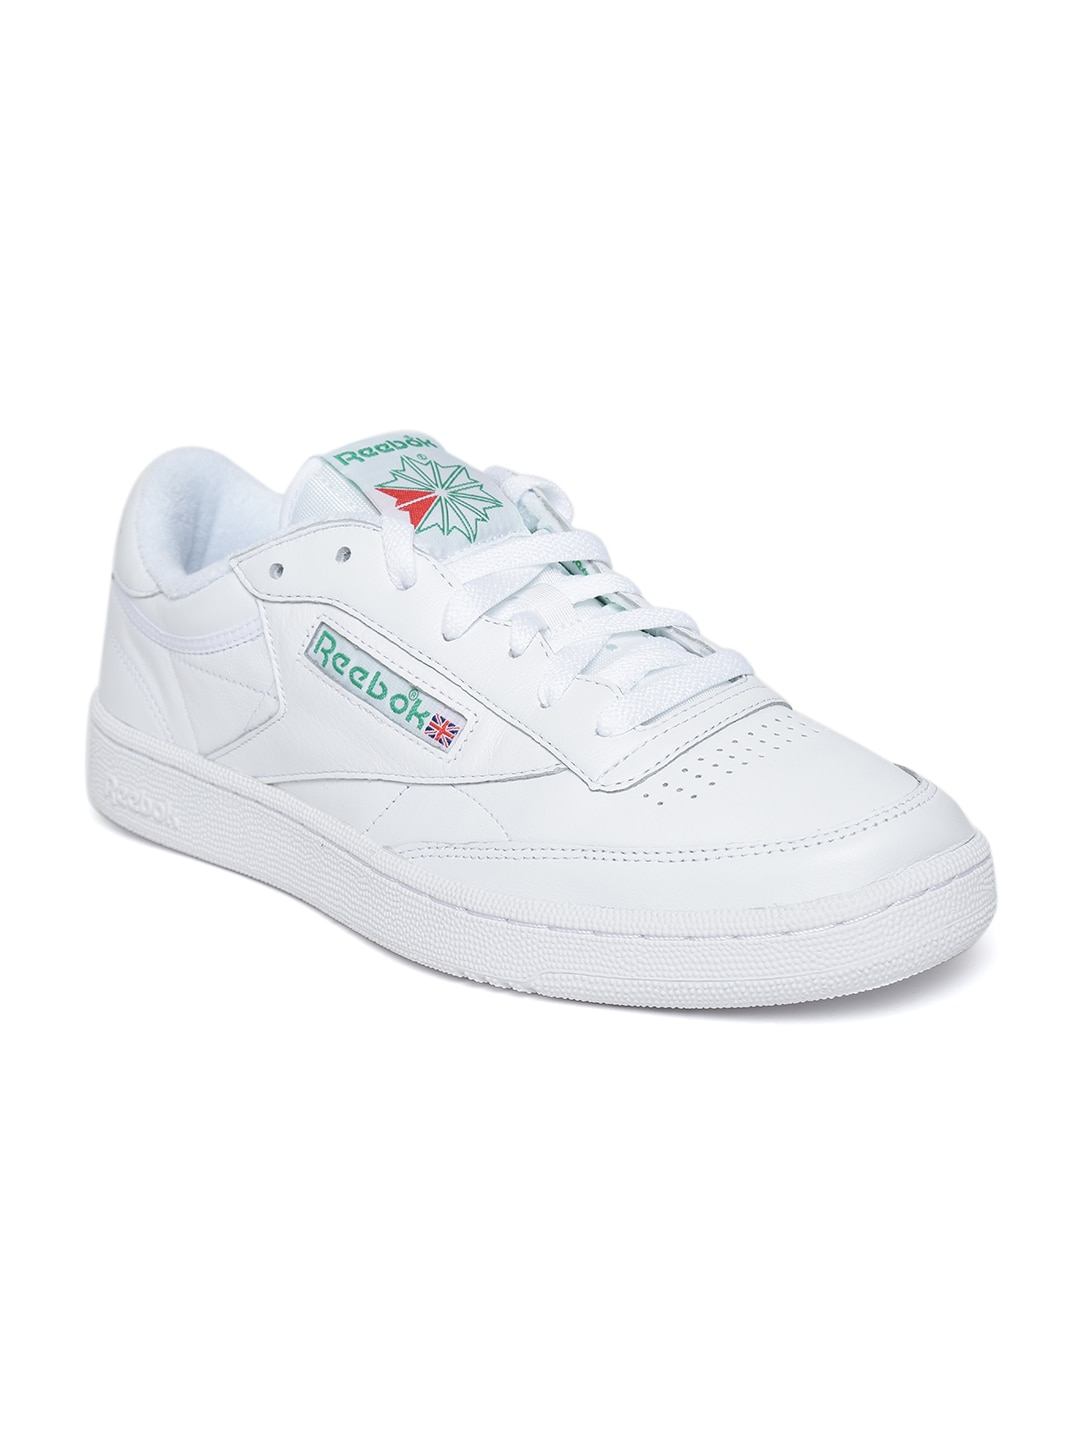 9a922a9b9cd Reebok Classic Club - Buy Reebok Classic Club online in India